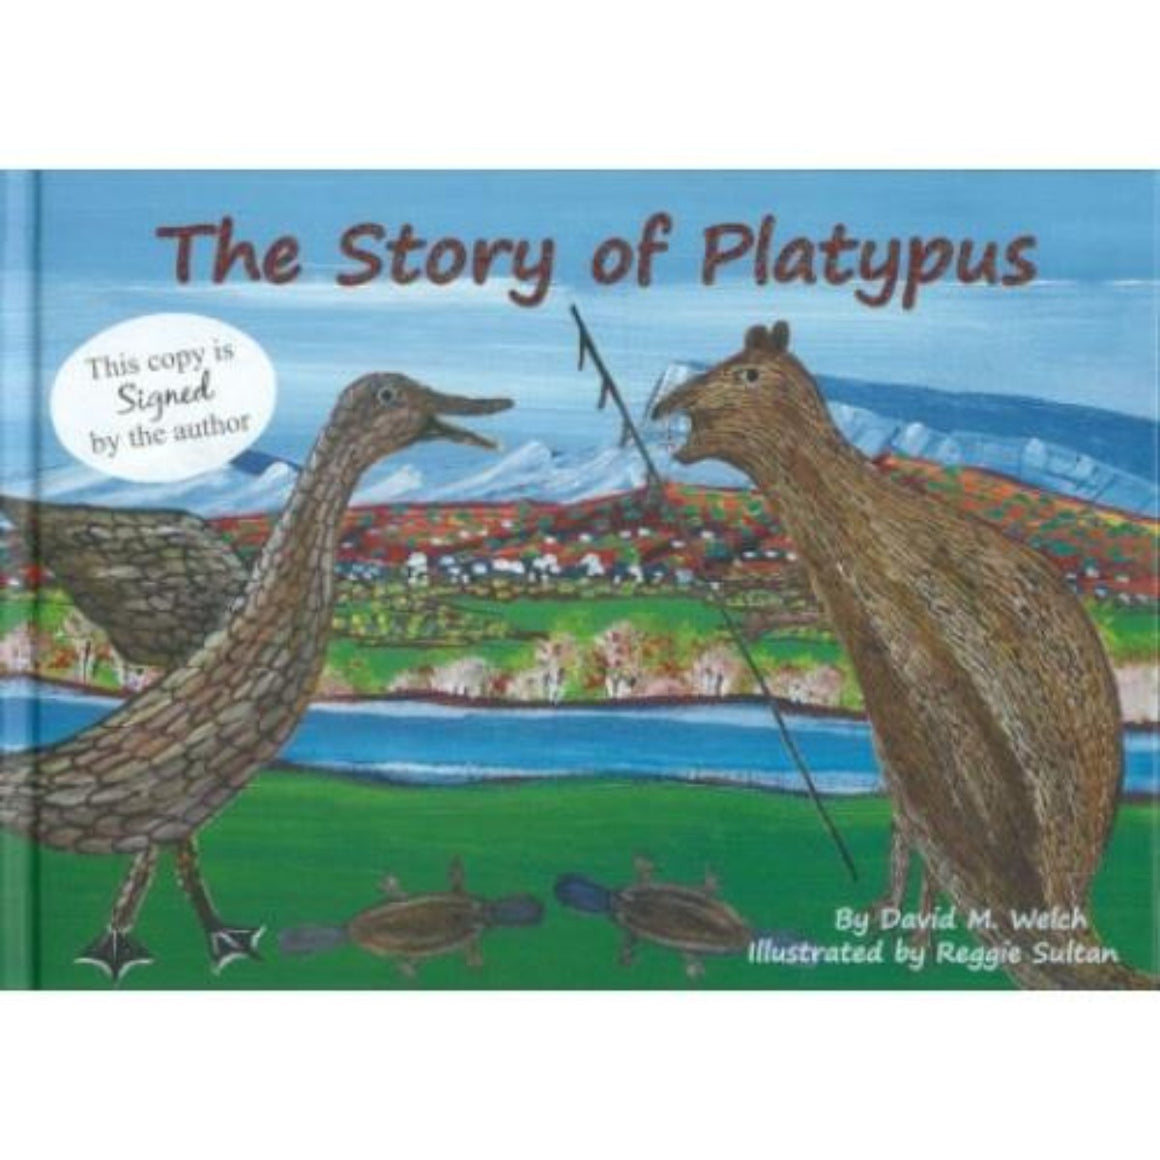 The Story of Platypus | Author: David M. Welch